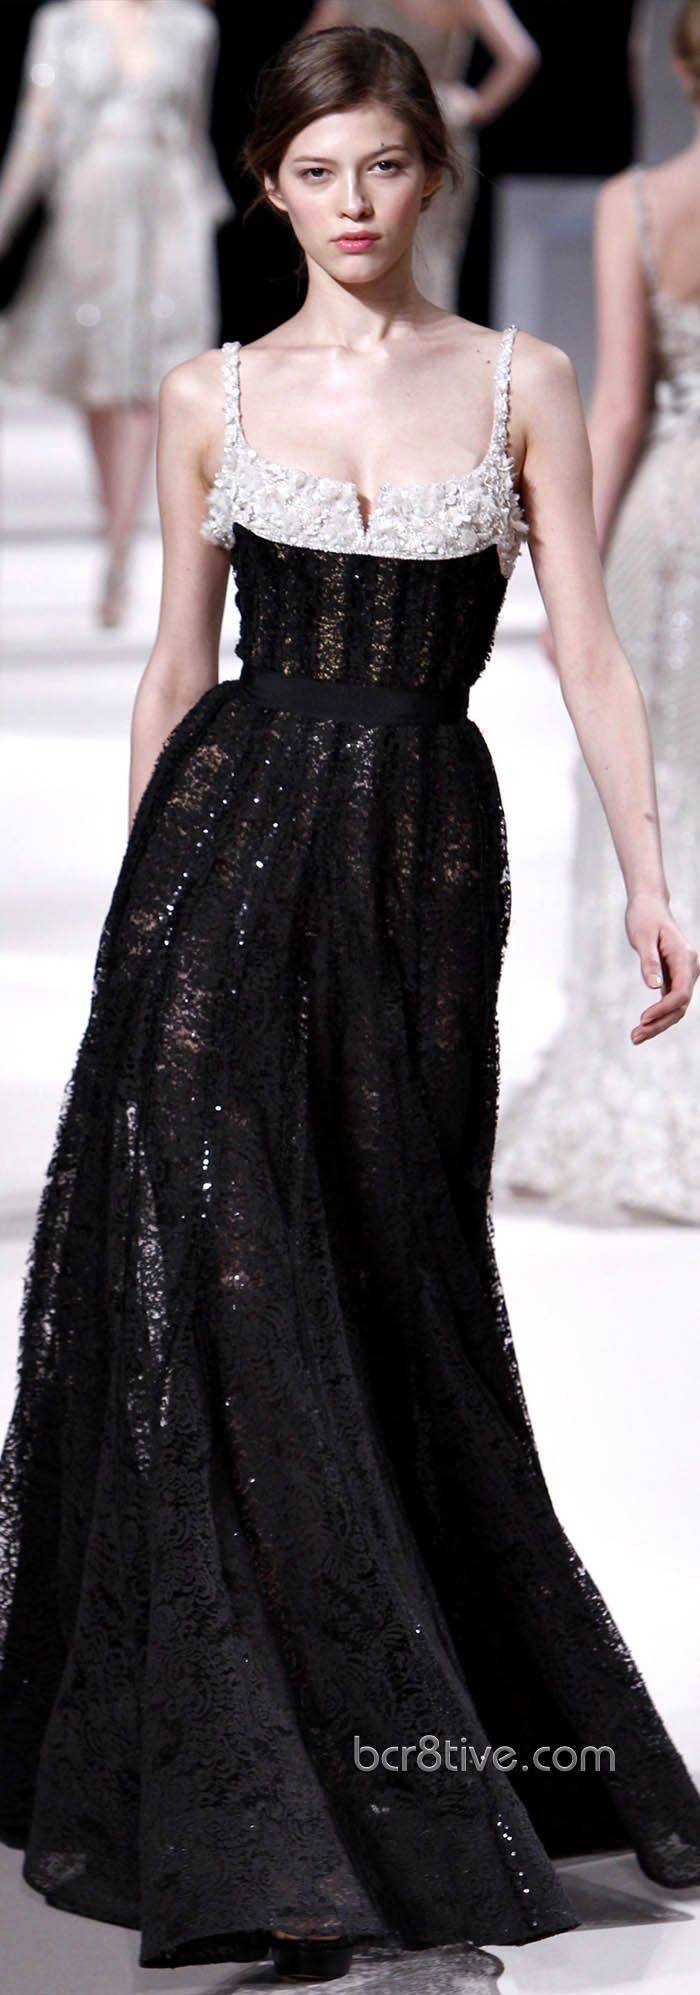 Elie Saab Haute Couture Spring Summer 2011 Collection♥✤ | Keep the Smiling | BeStayBeautiful